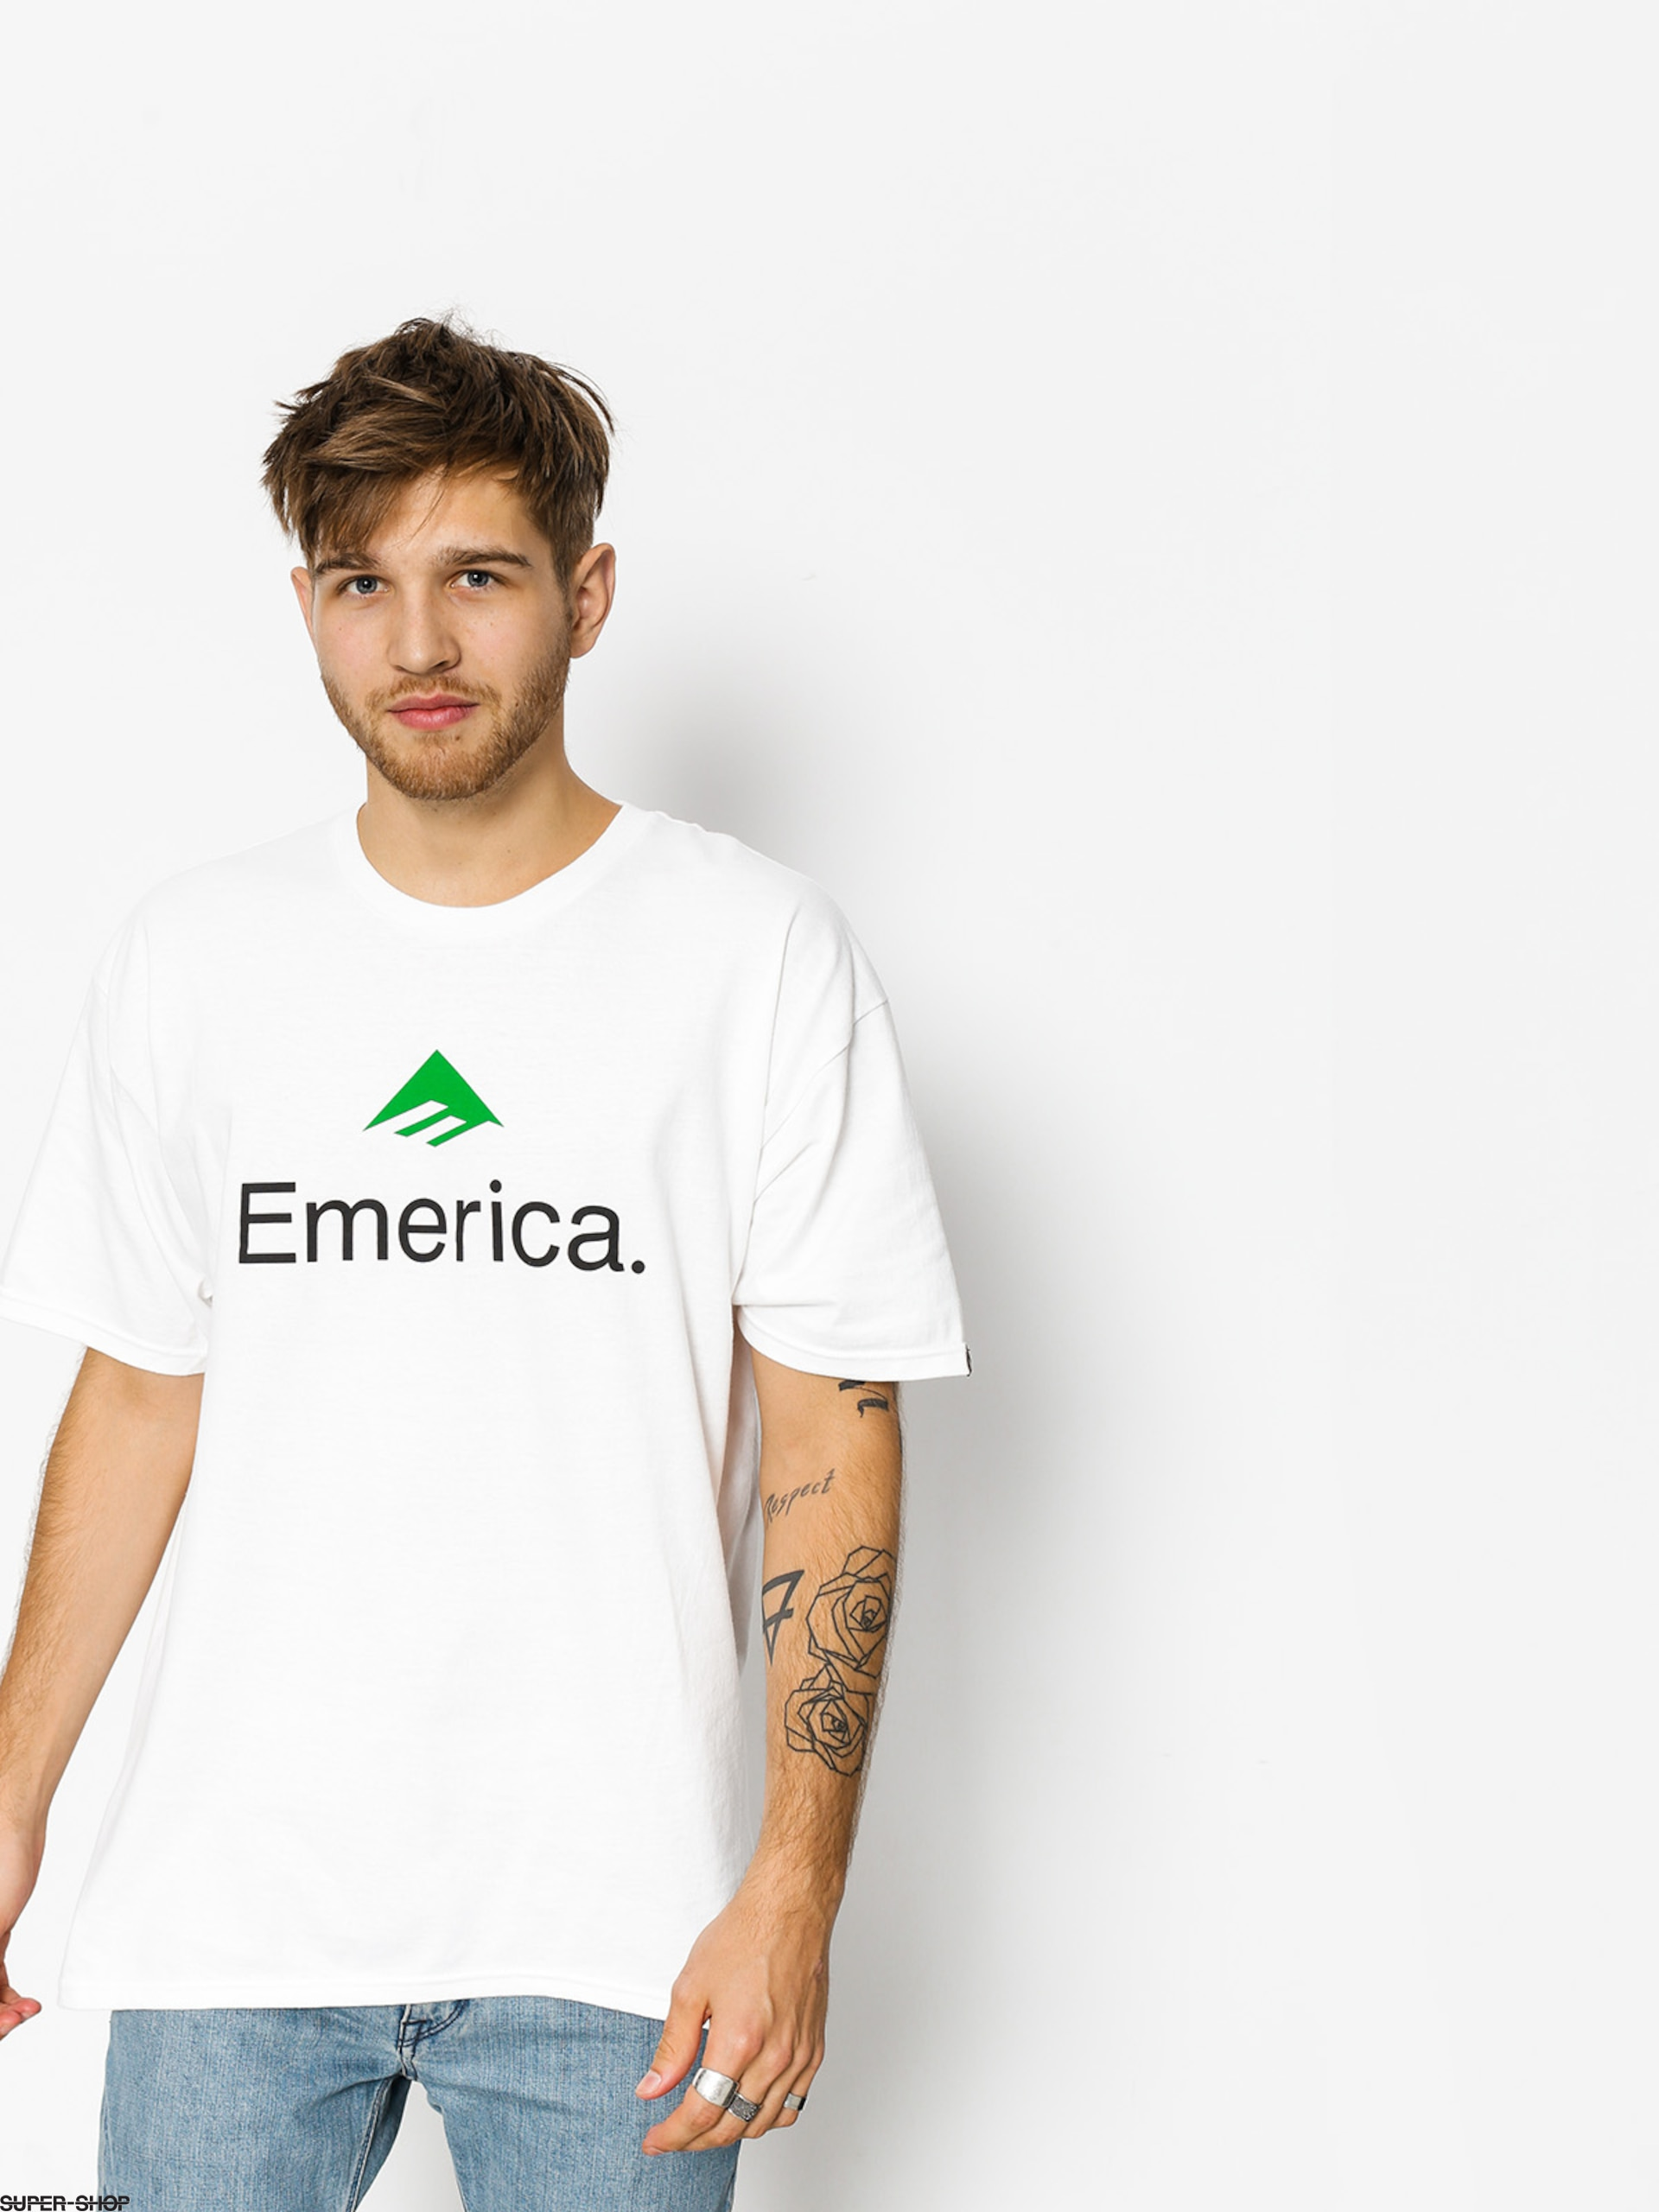 Emerica T-shirt Skateboard Logo (white/green)